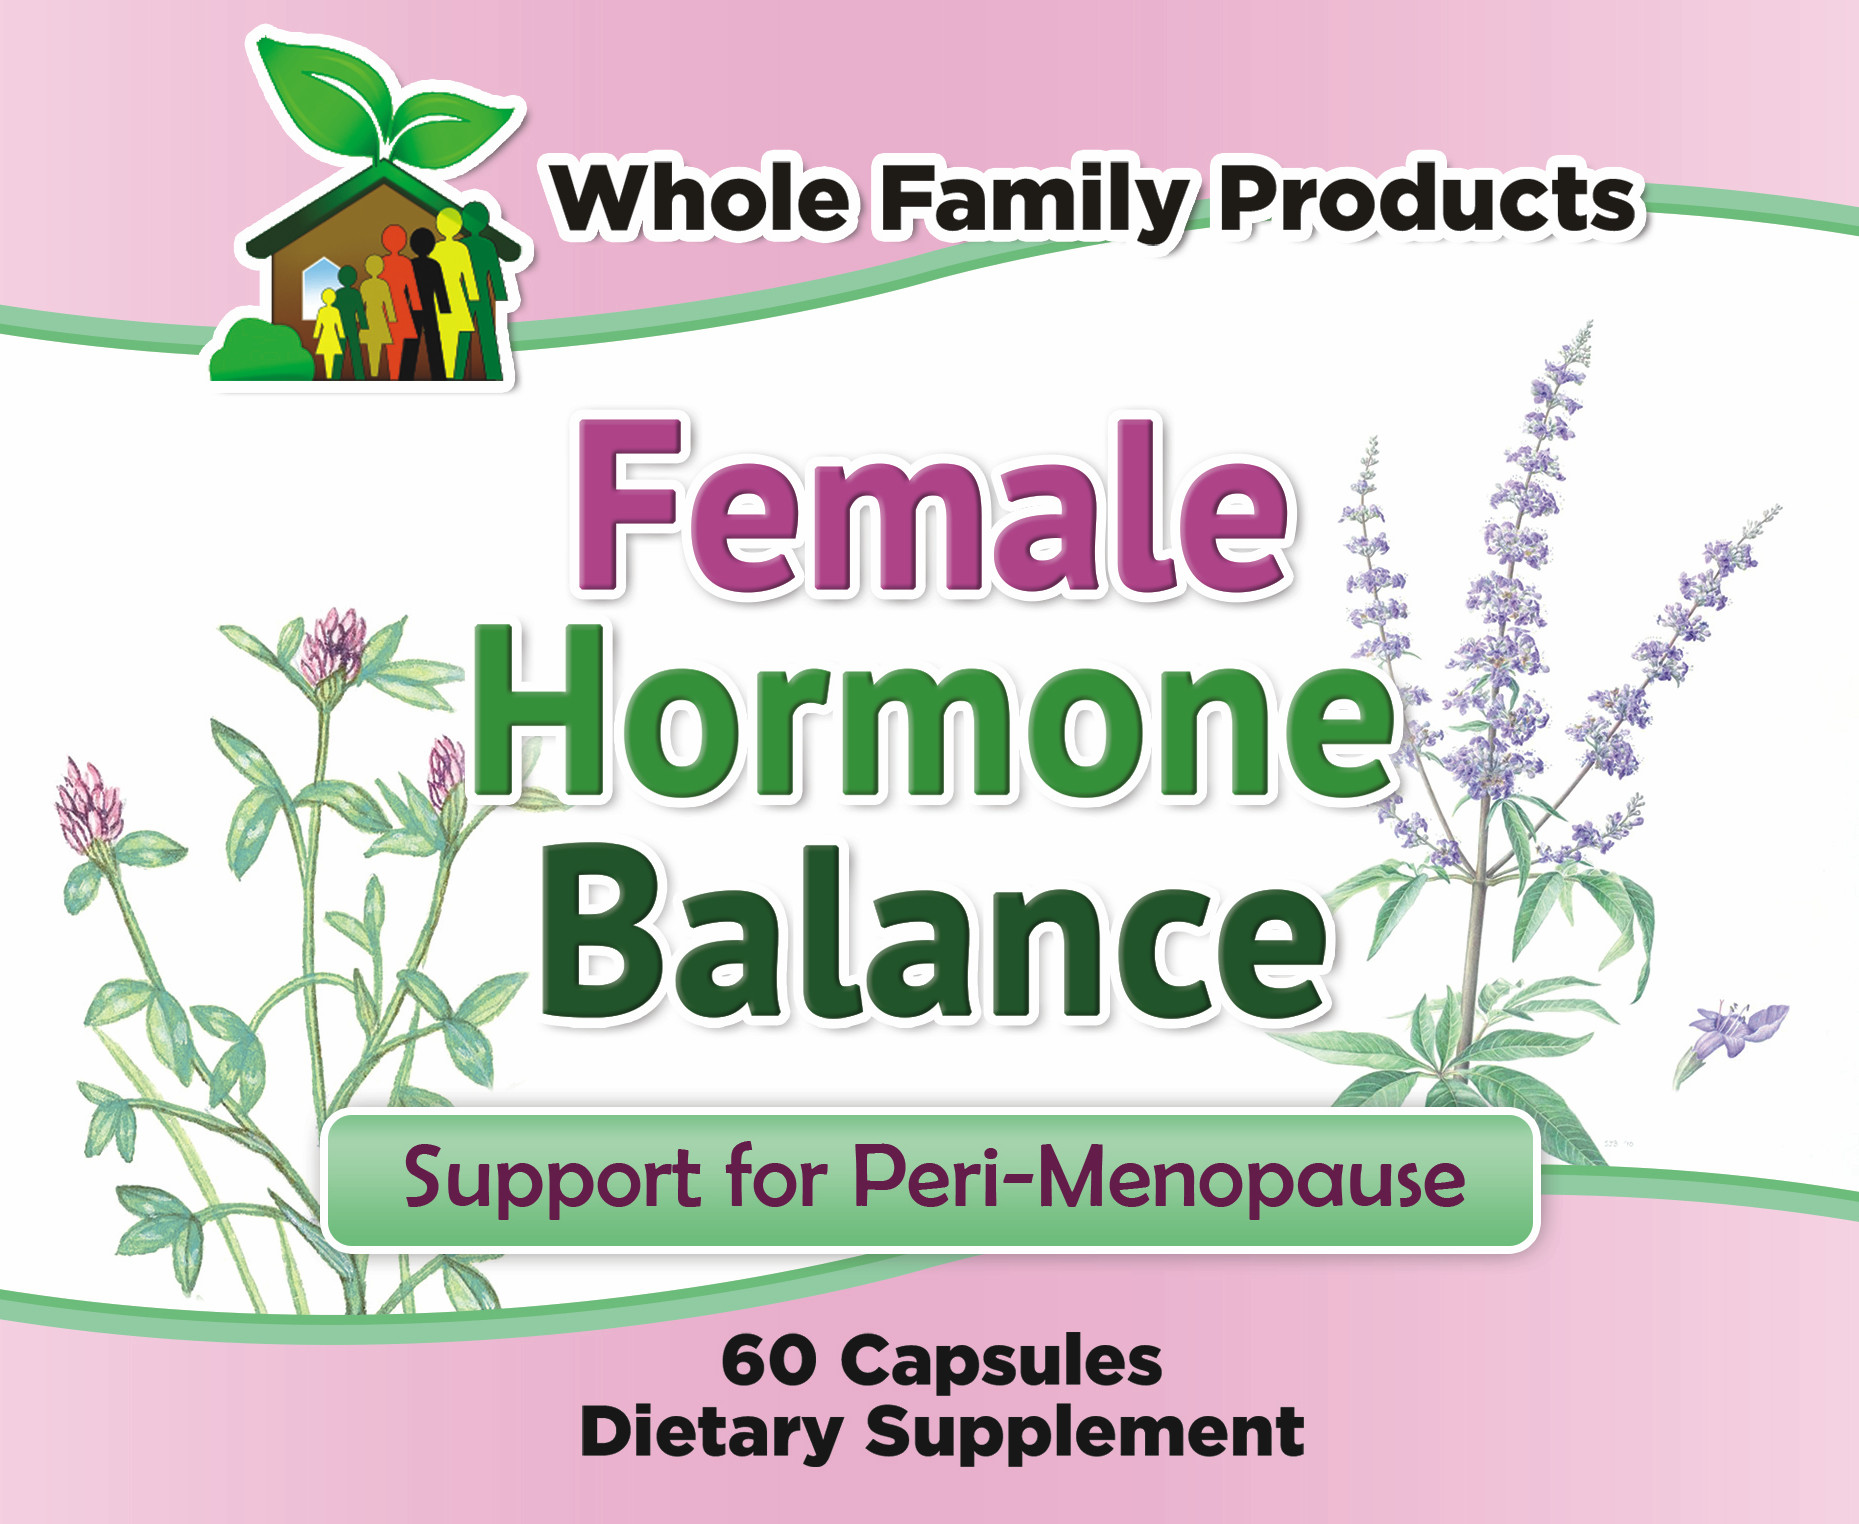 Female Hormone Balance for Perimenopause - Menopause Symptom Support for  Hot Flashes, Night Sweats, and Mood Swings with Black Cohosh and Soy